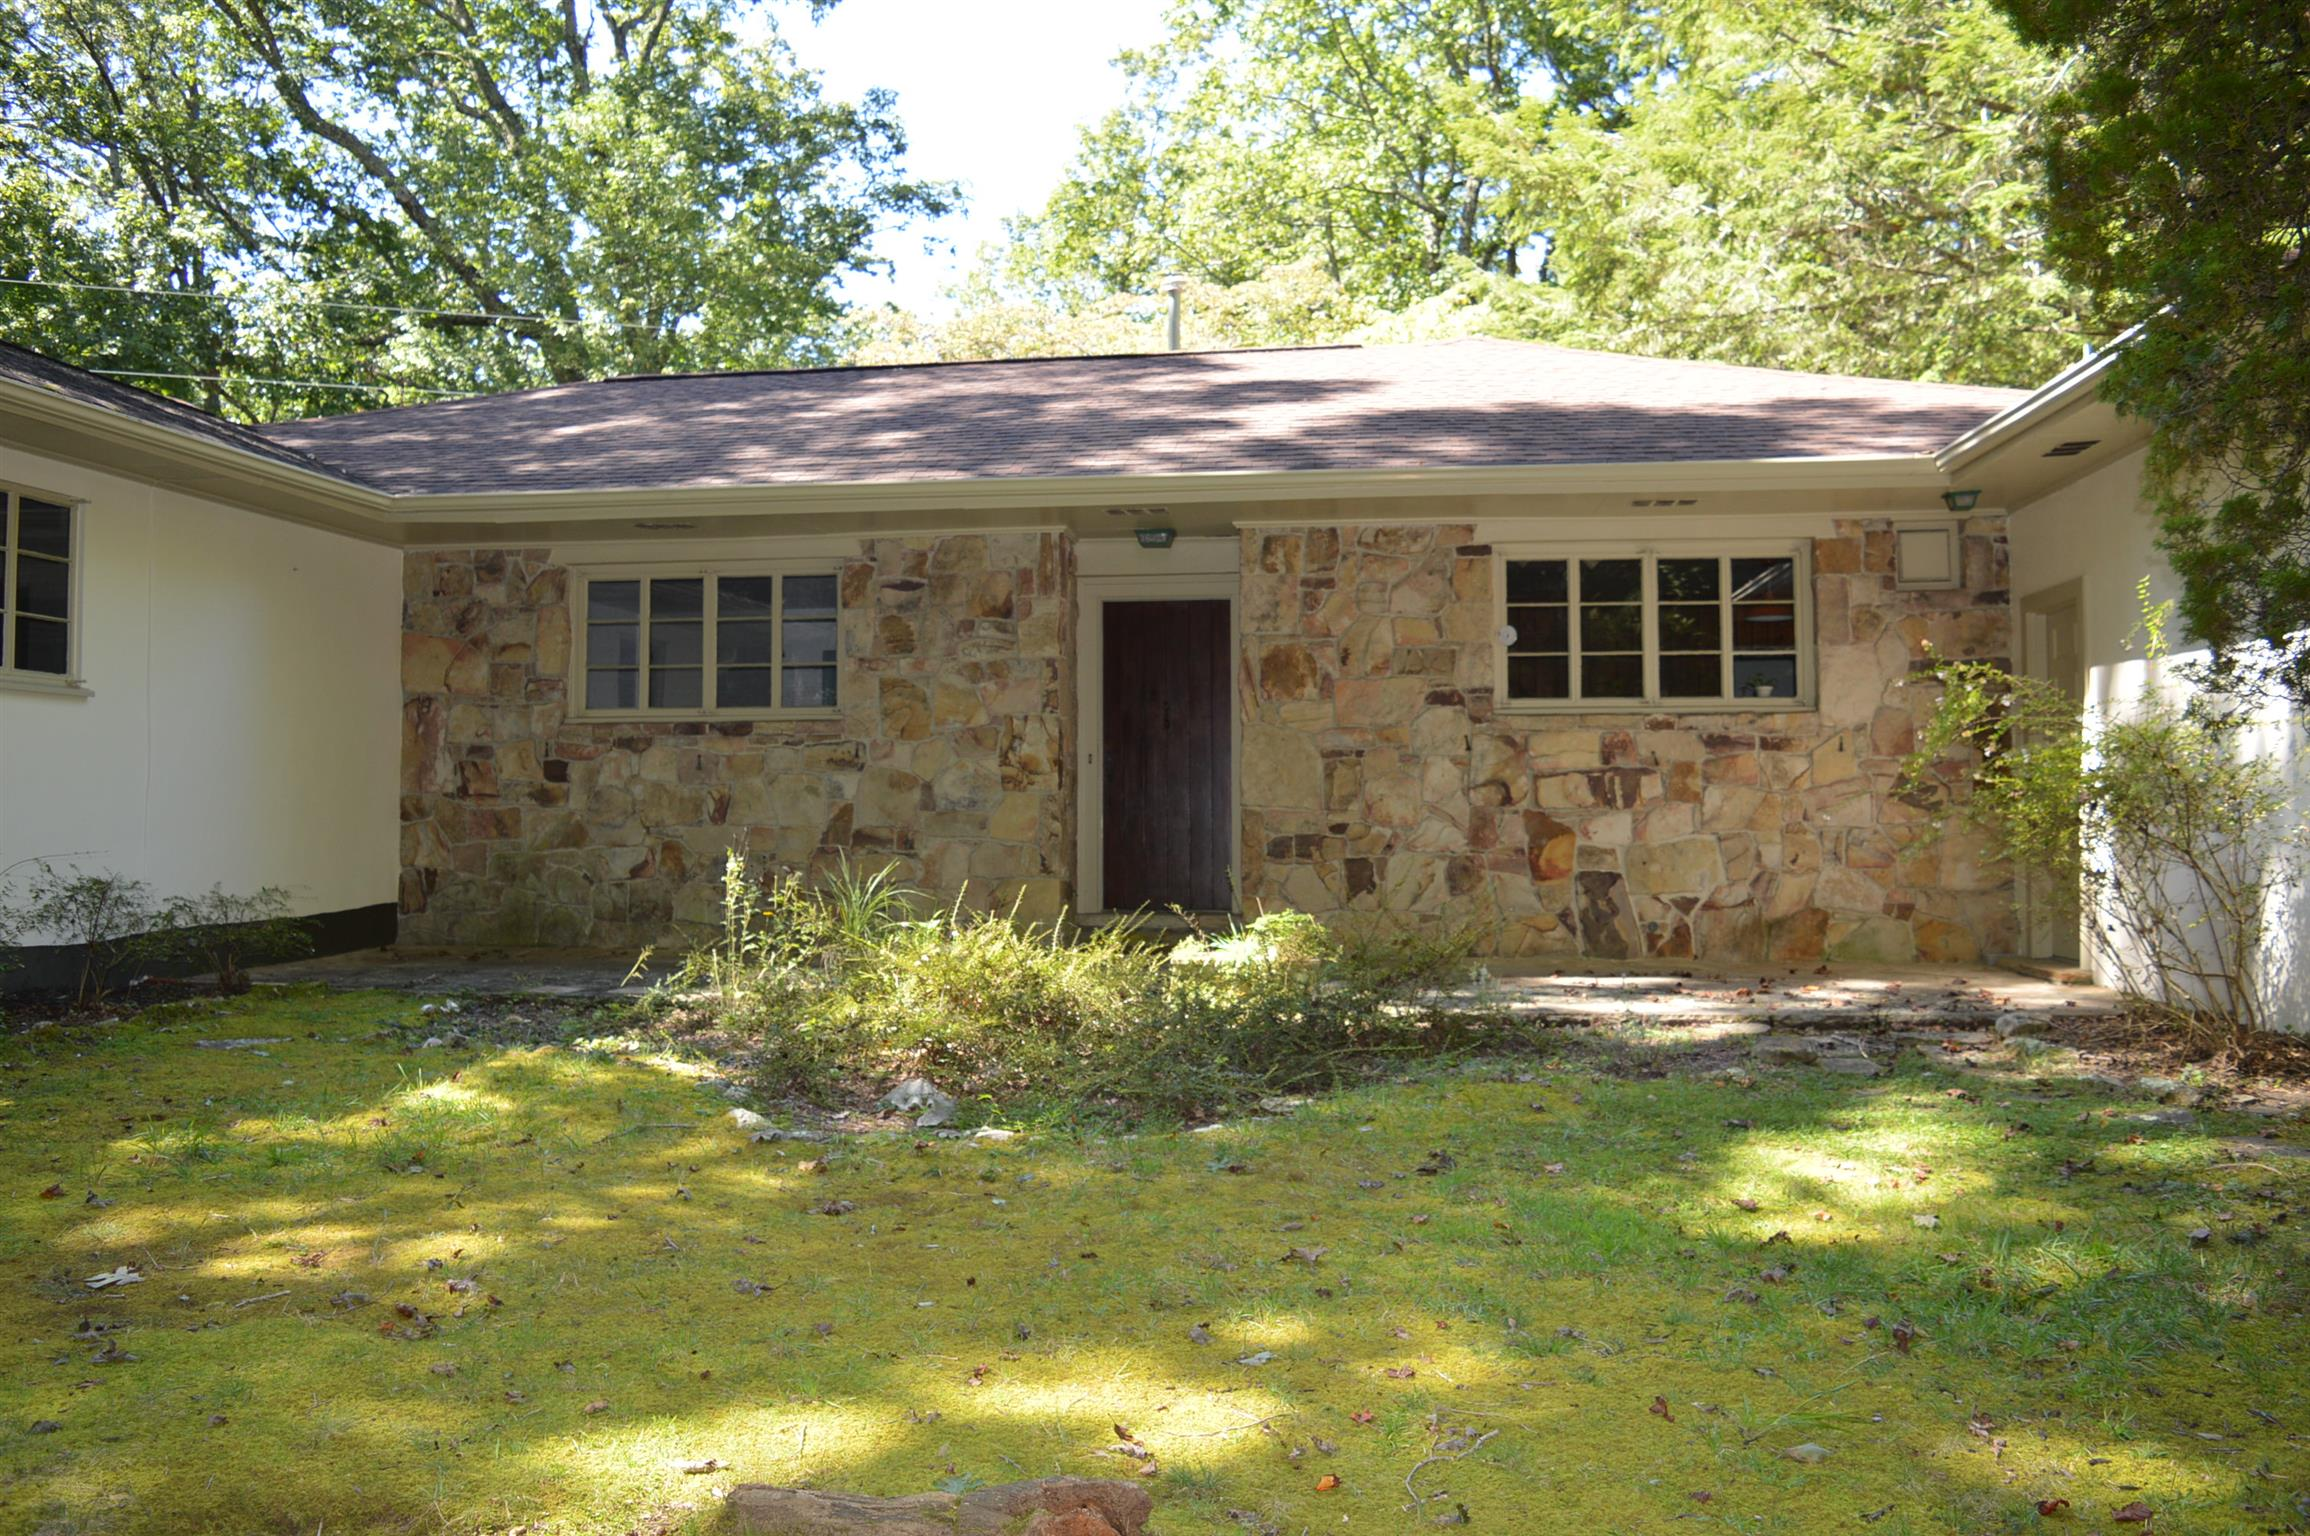 246 Curlicue Road, Sewanee, TN 37375 - Sewanee, TN real estate listing